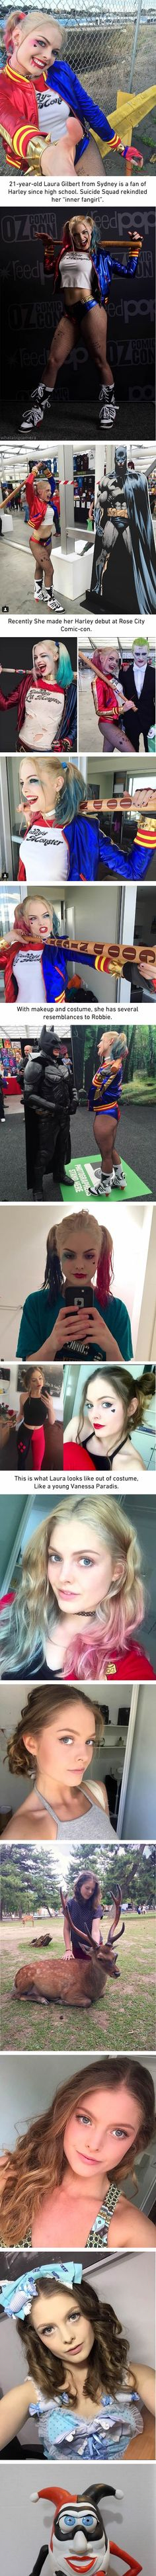 The closest Harley Quinn cosplay